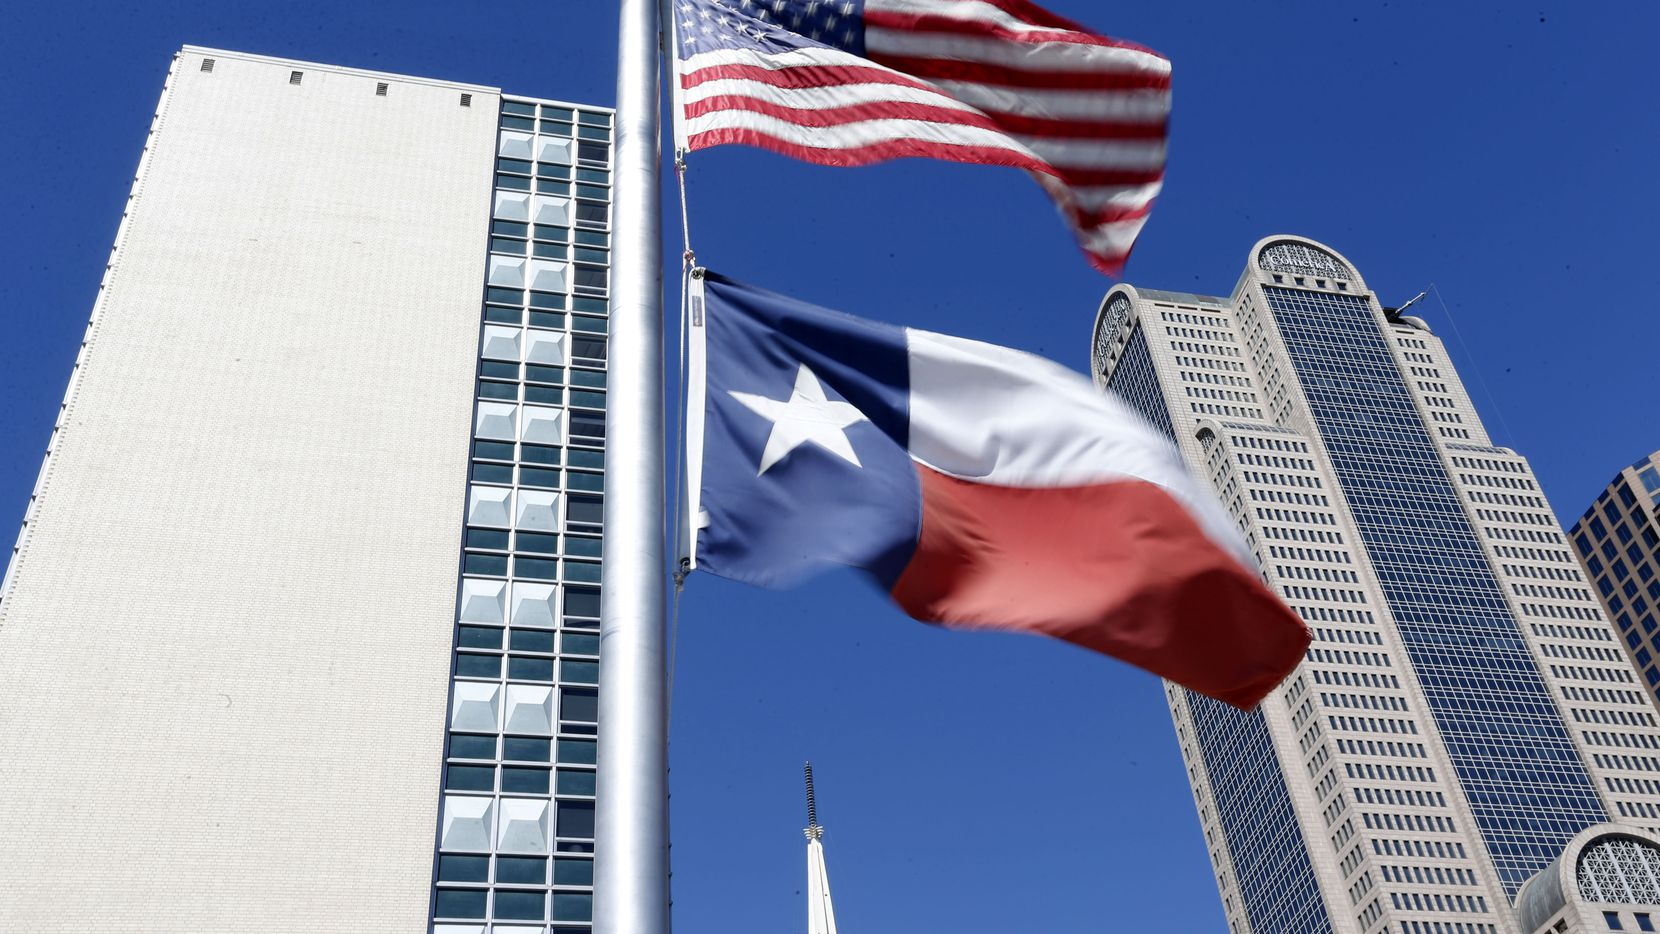 The U.S. and Texas flags fly at half staff above The Dallas Morning News building.